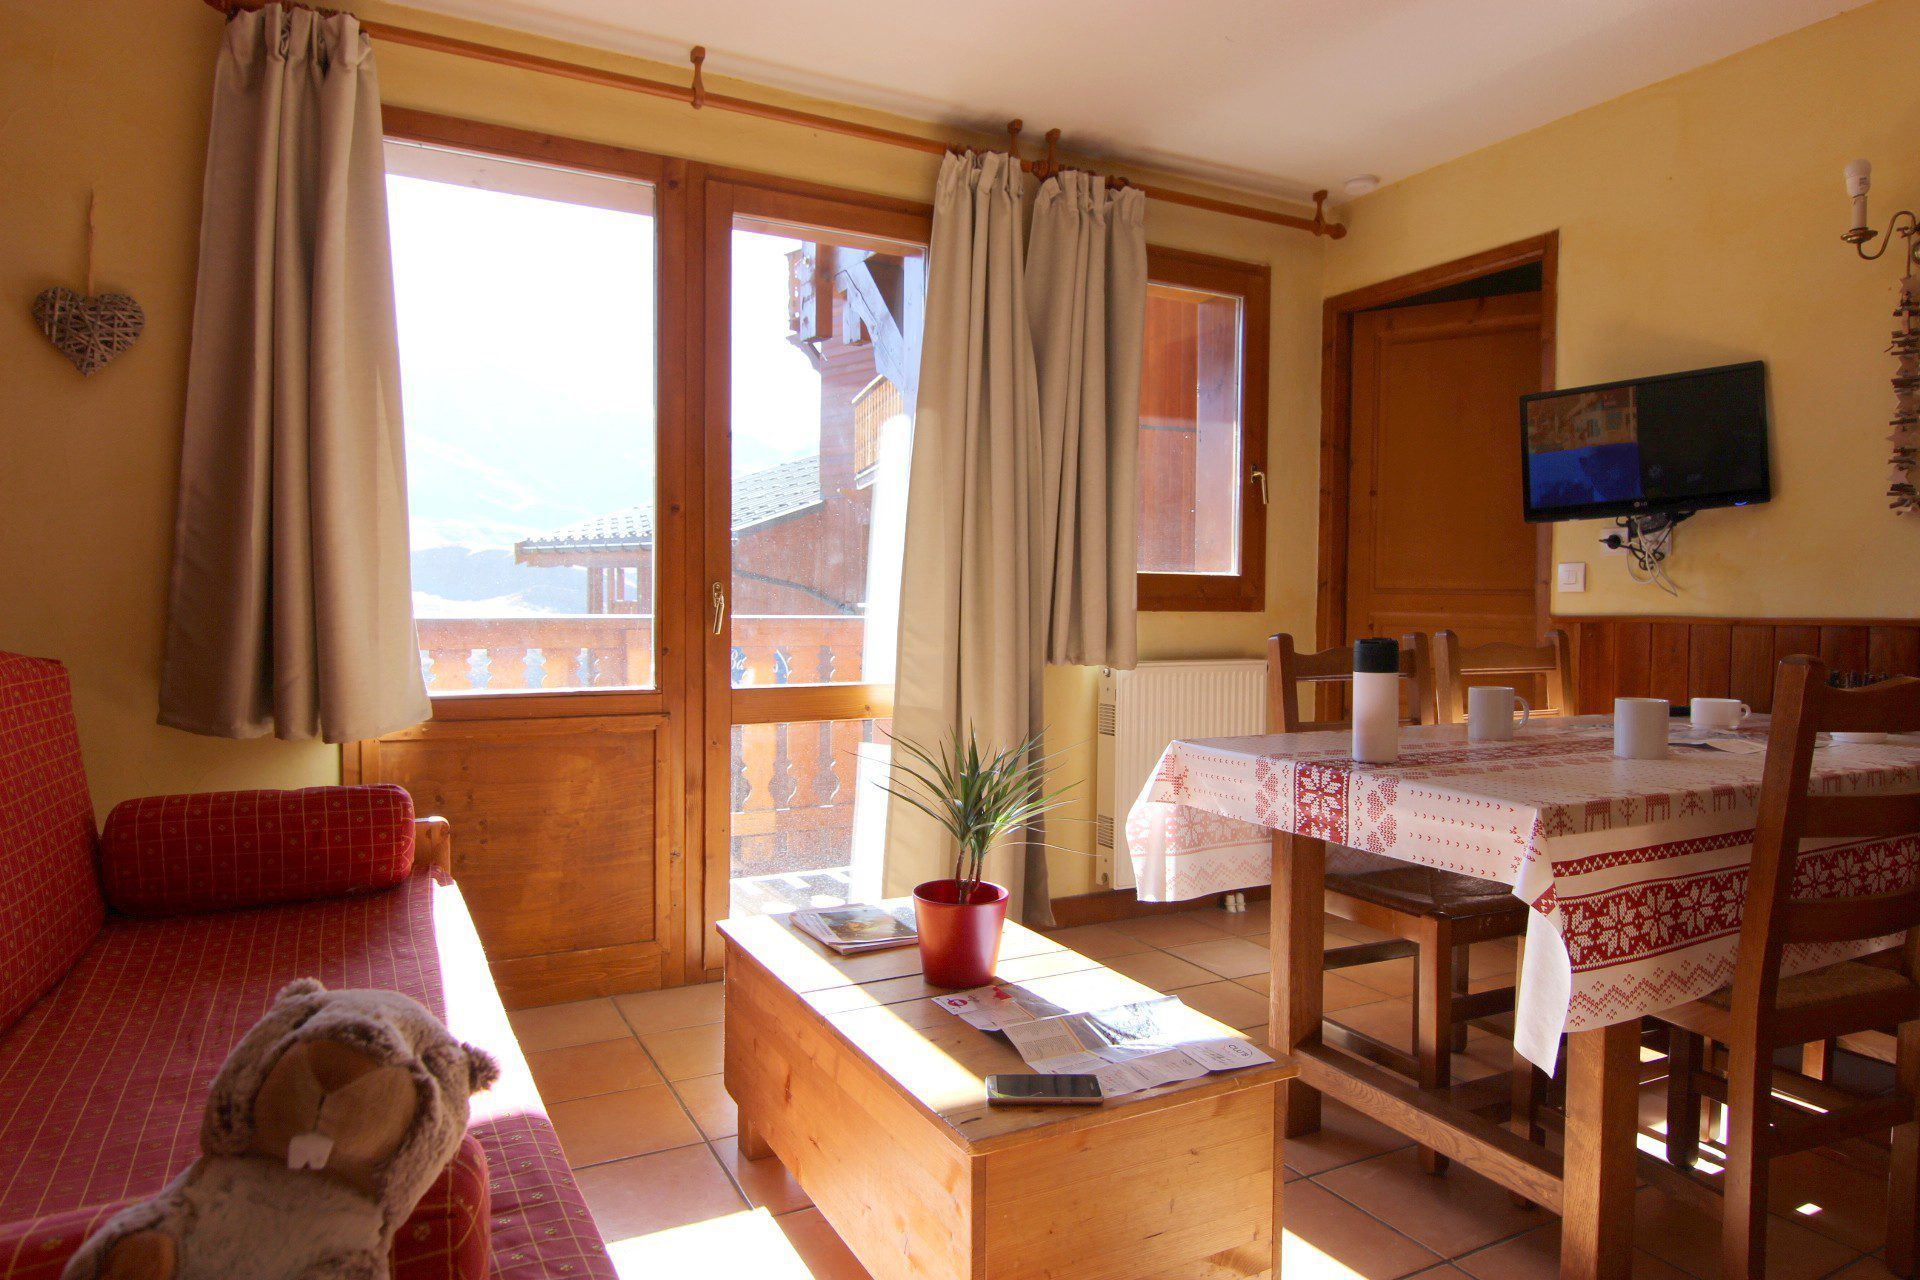 CHALET 6 QUARTIER BALCONS 646 / 2 ROOMS 4 PERSONS - 3 SILVER SNOWFLAKES - VTI